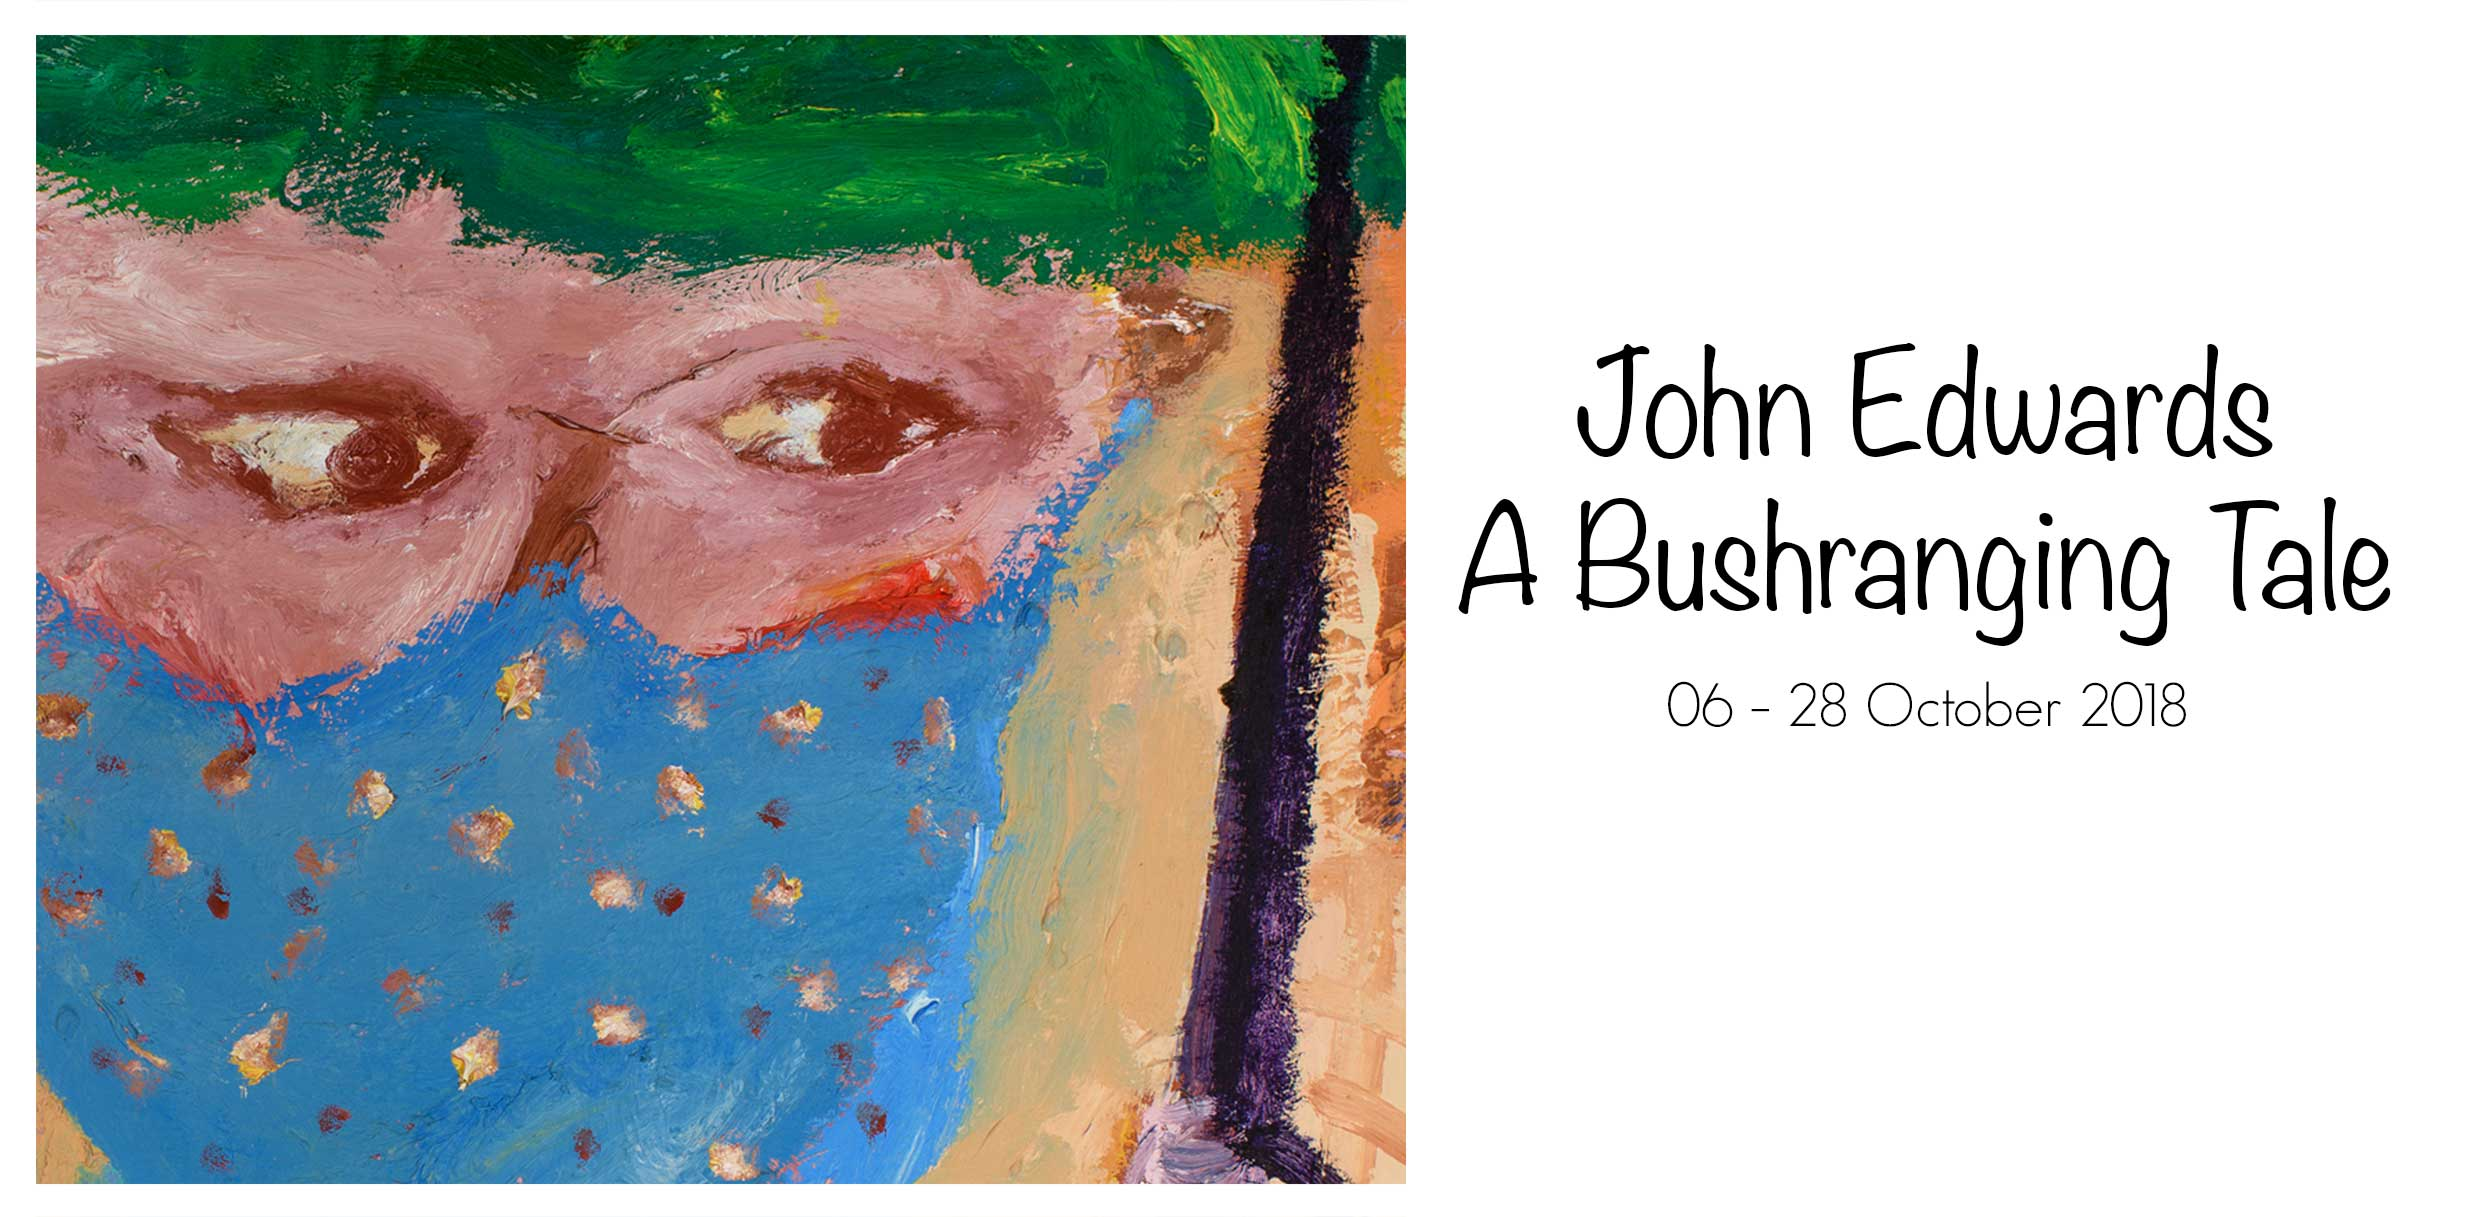 Artsite Galleries Exhibition | John Edwards | A Bushranging Talt | 06 - 28 October 2018